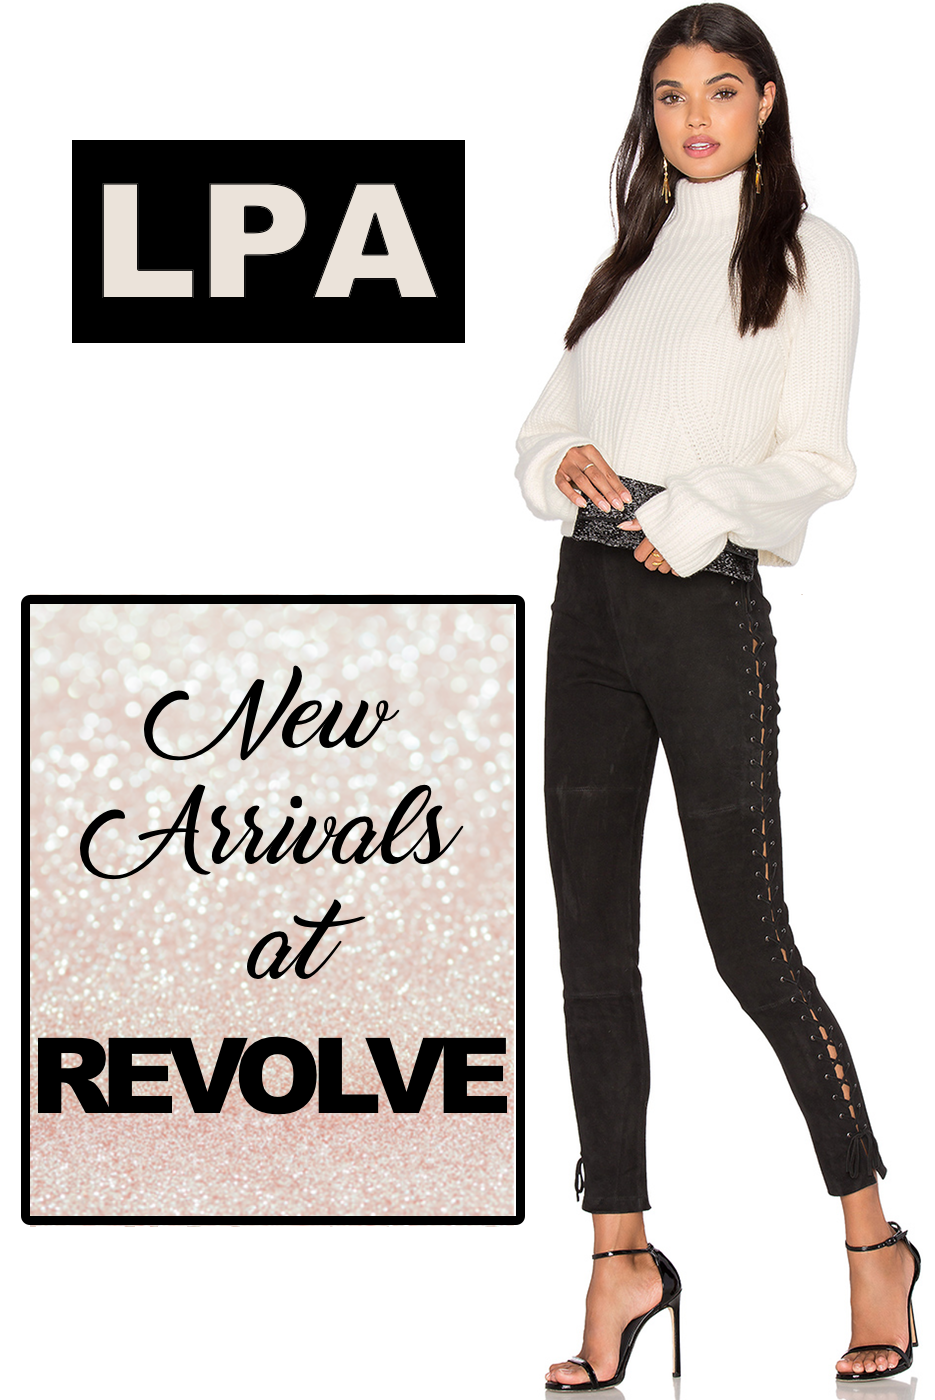 7c3cf0faba25 Revolve has some brand new arrivals from LPA! A collection of chunky knit  sweaters, silk tops, body suits, and faux fur jackets. According to  designer Lara ...